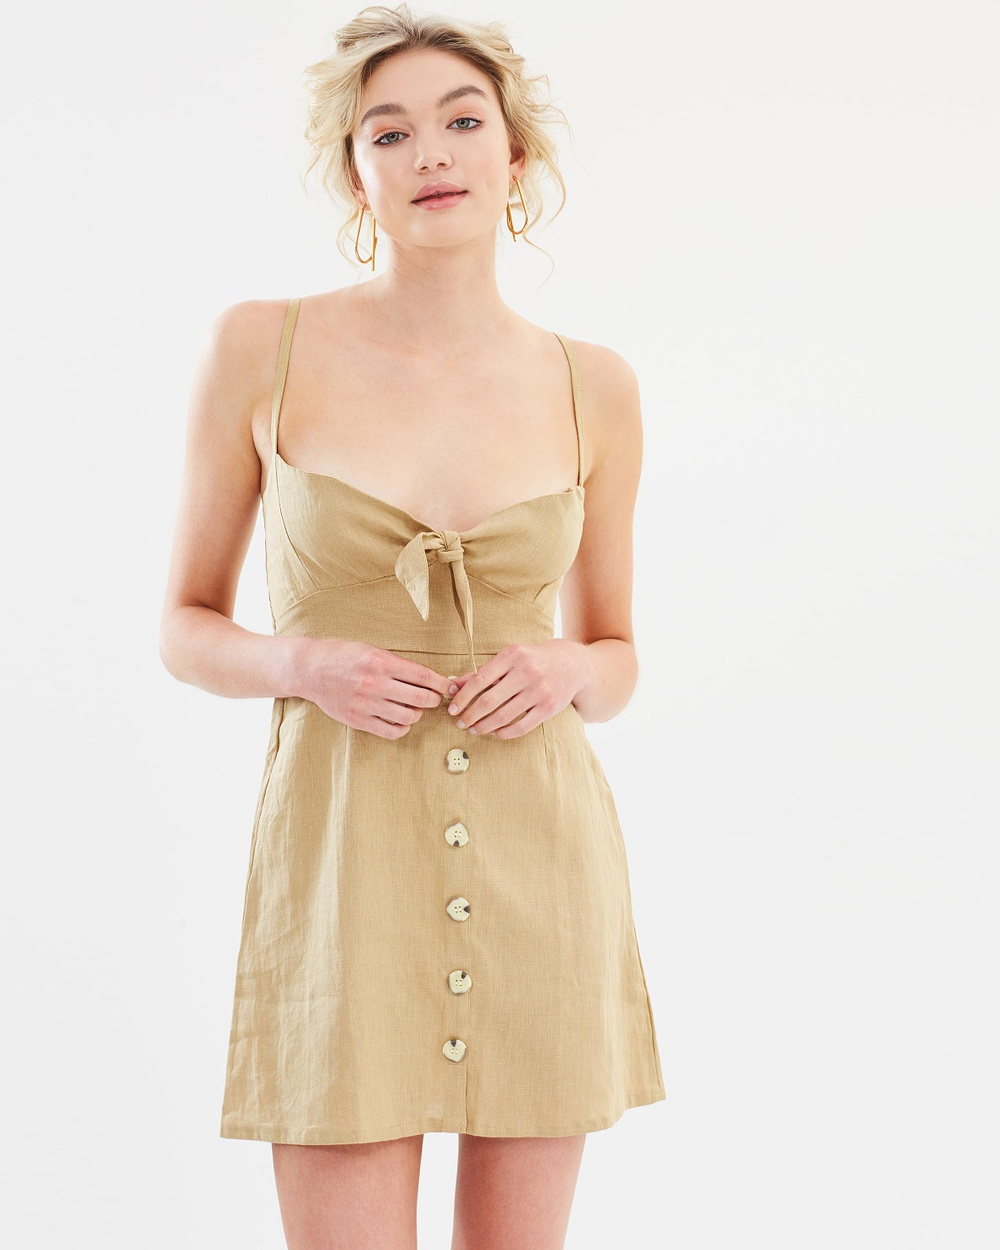 Faithfull Rodeo Dress Dresses Plain Oat Rodeo Dress